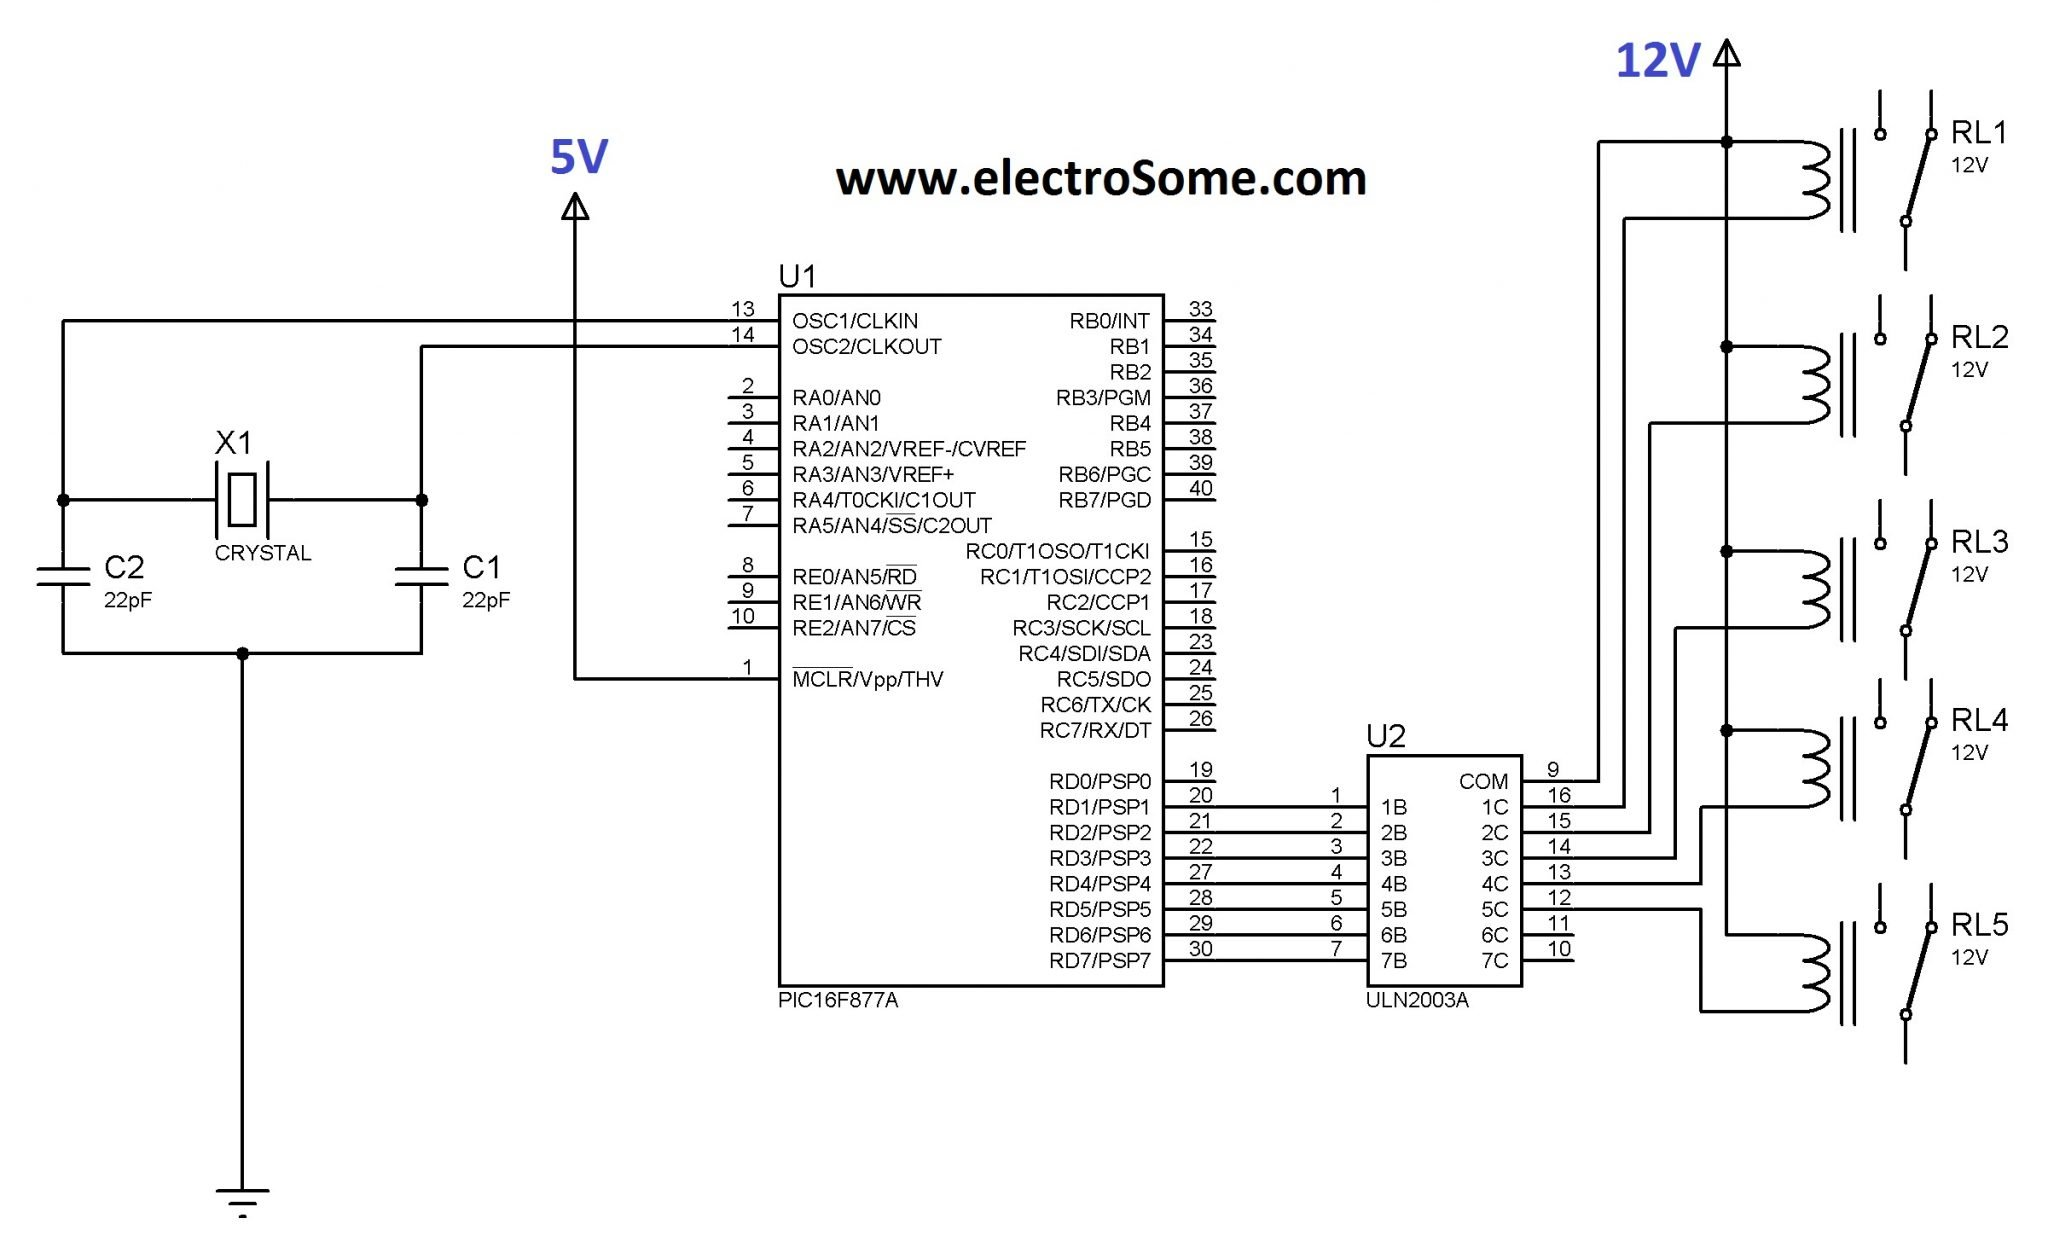 wiring on off switch diagram with Interfacing Relay With Pic Microcontroller on US20130119887 moreover Light Sensitive Switch additionally Ignition Of Fluorescent L s Schematic further Interfacing Relay With Pic Microcontroller together with Signal Stat 900 Again.